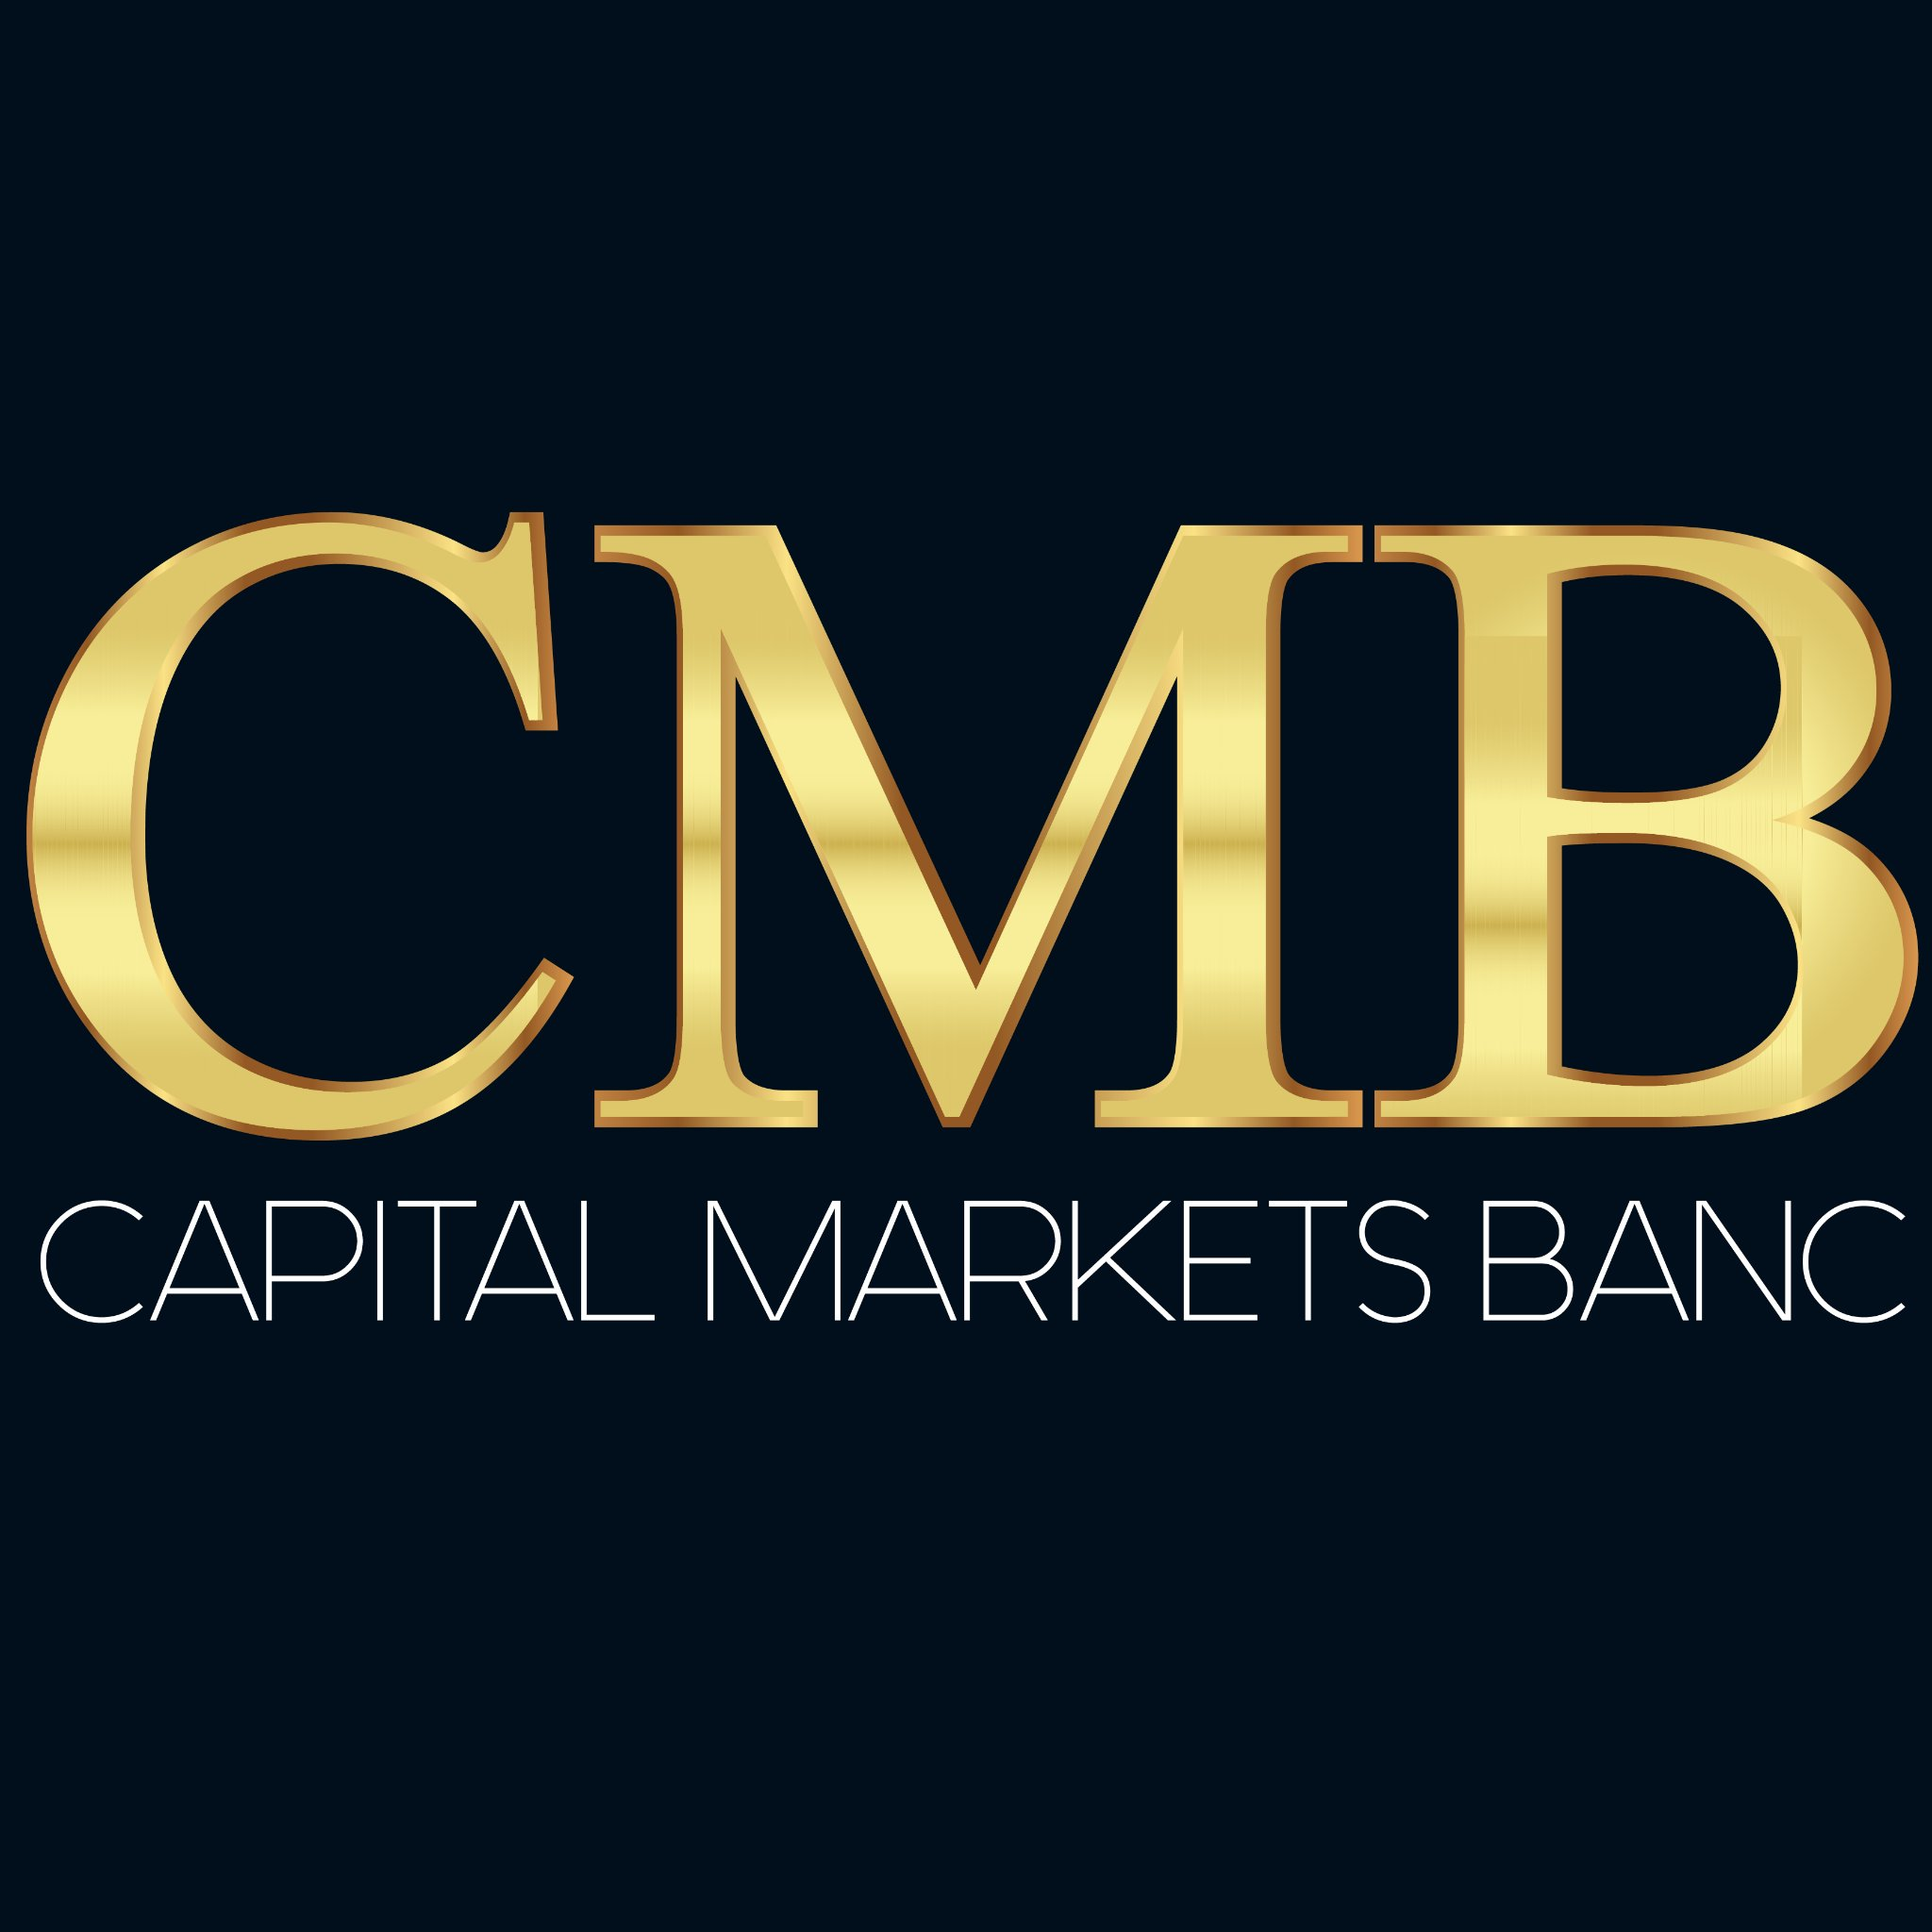 capital markets Significant global regulatory change has impacted the business and revenue of capital markets firms business models, product offerings, risk management, and capital.